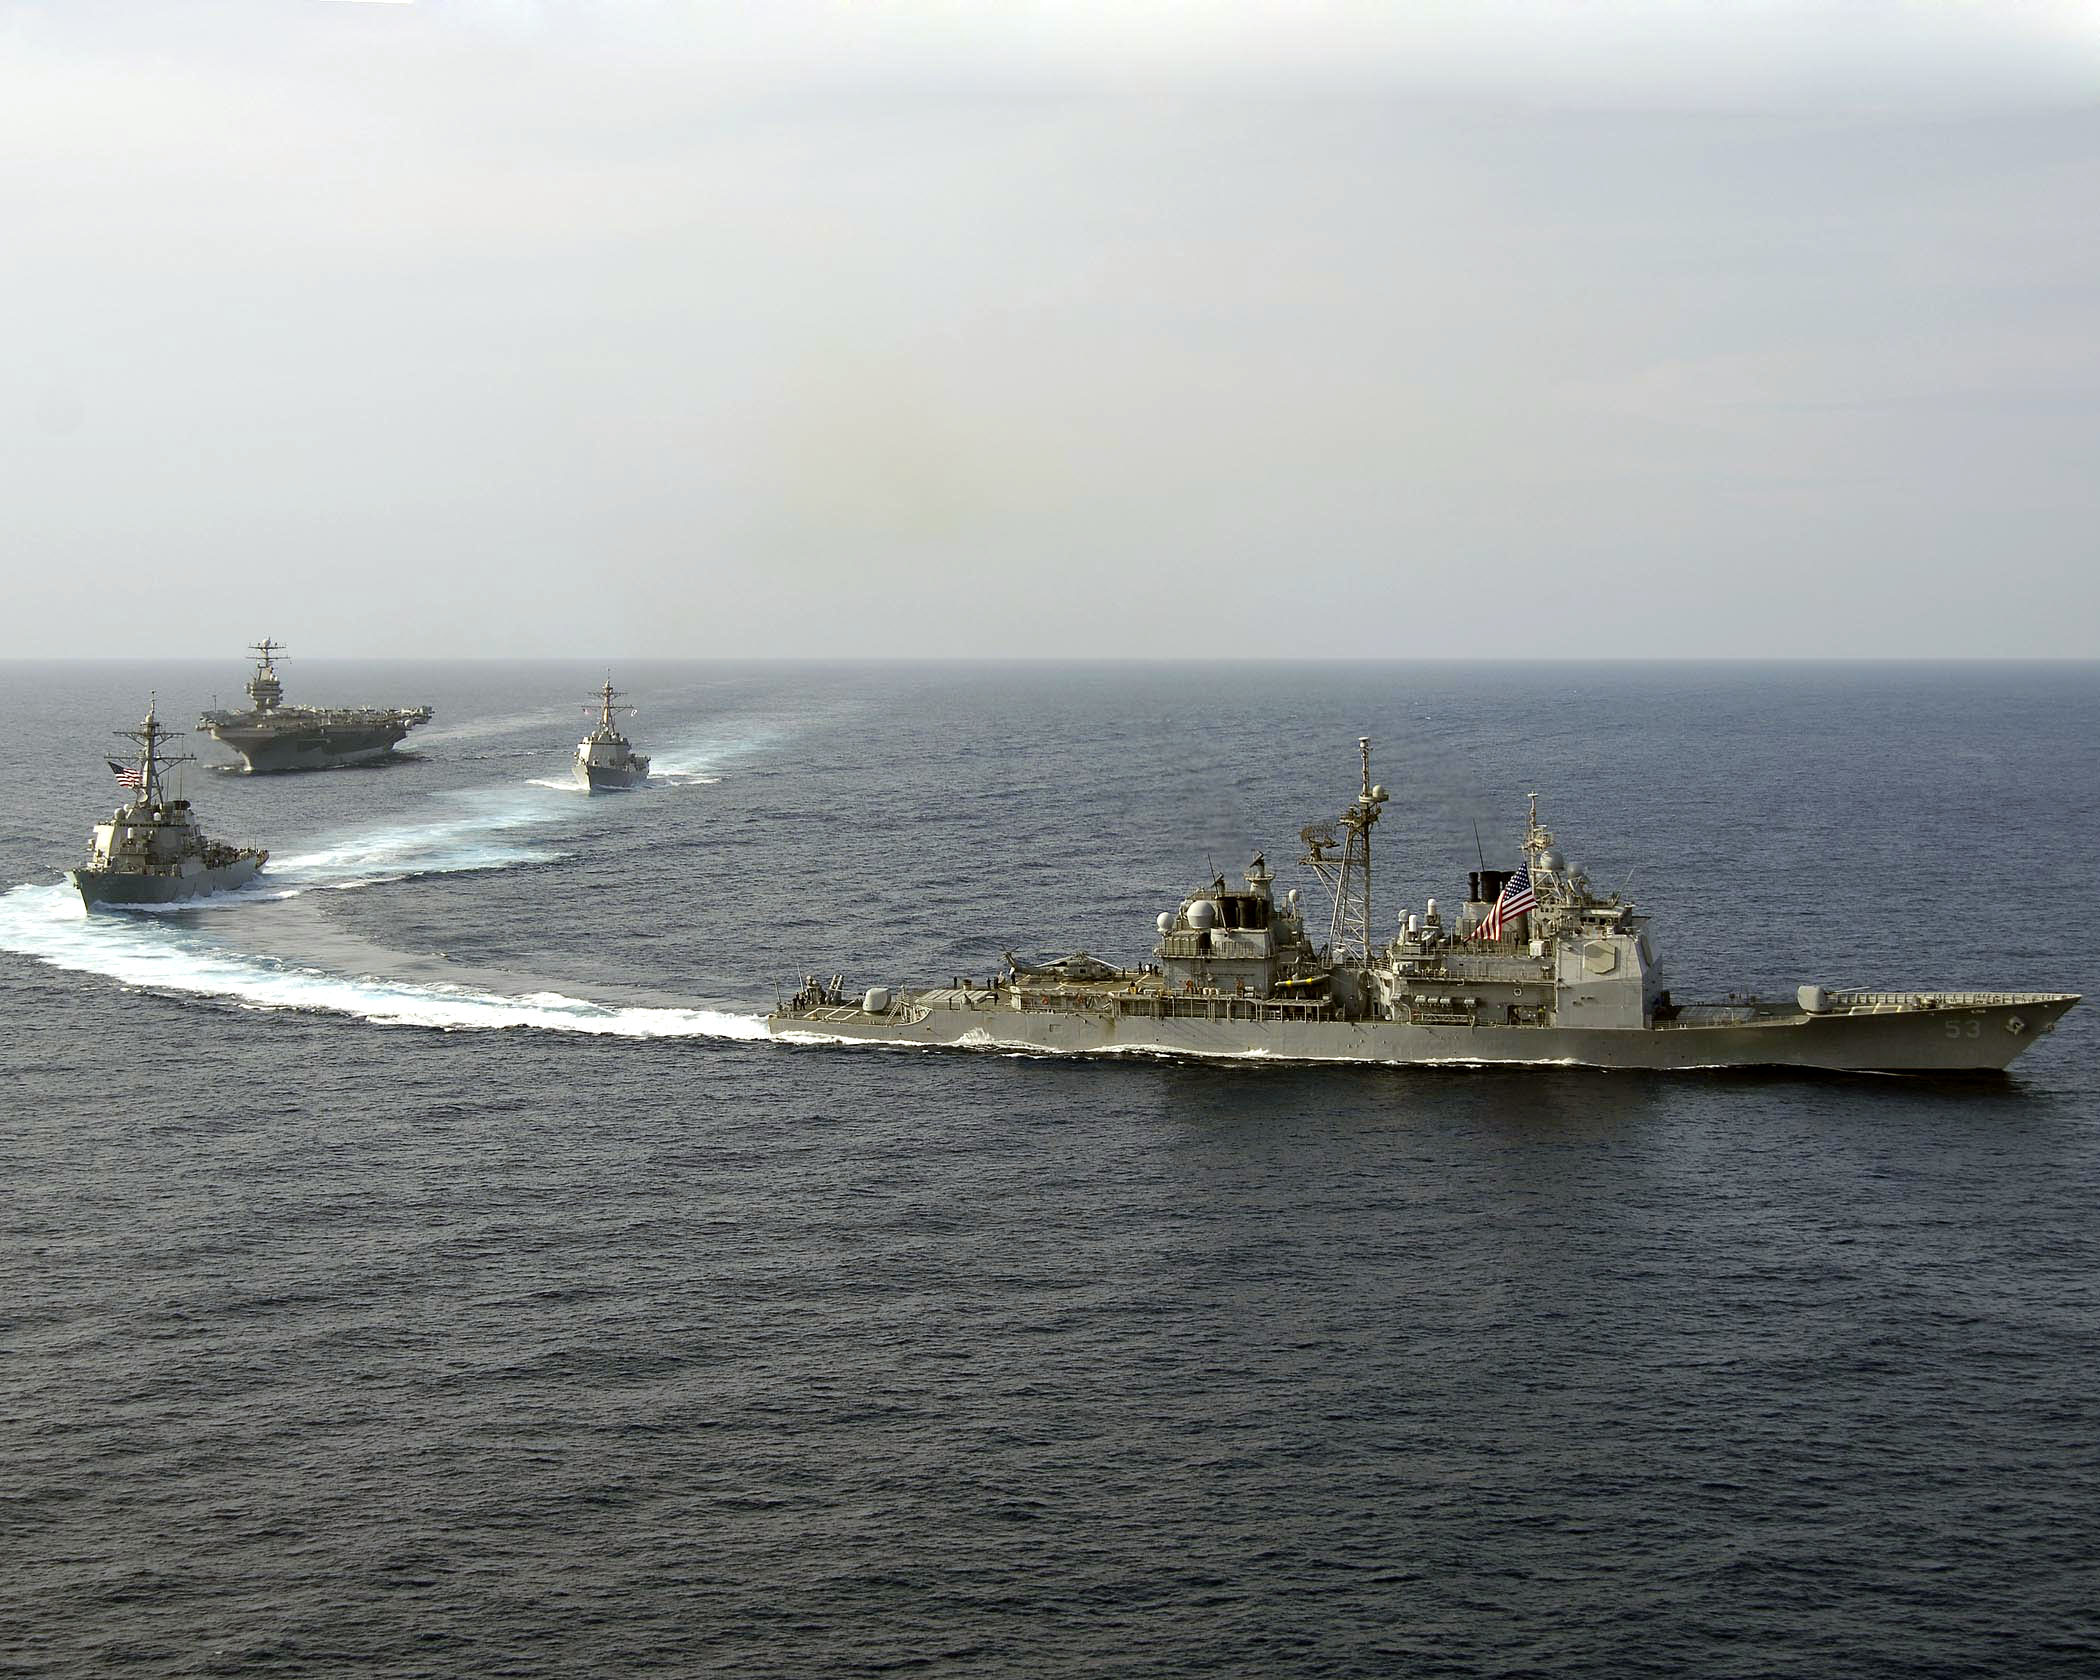 Ddg113 http://commons.wikimedia.org/wiki/File:US_Navy_060416-N-5837R-113_USS_Mobile_Bay_(CG_53),_USS_Russell_(DDG_59),_and_USS_Shoup_(DDG_86)_perform_a_pass_and_review_with_the_Nimitz-class_aircraft_carrier_USS_Abraham_Lincoln_(CVN_72).jpg